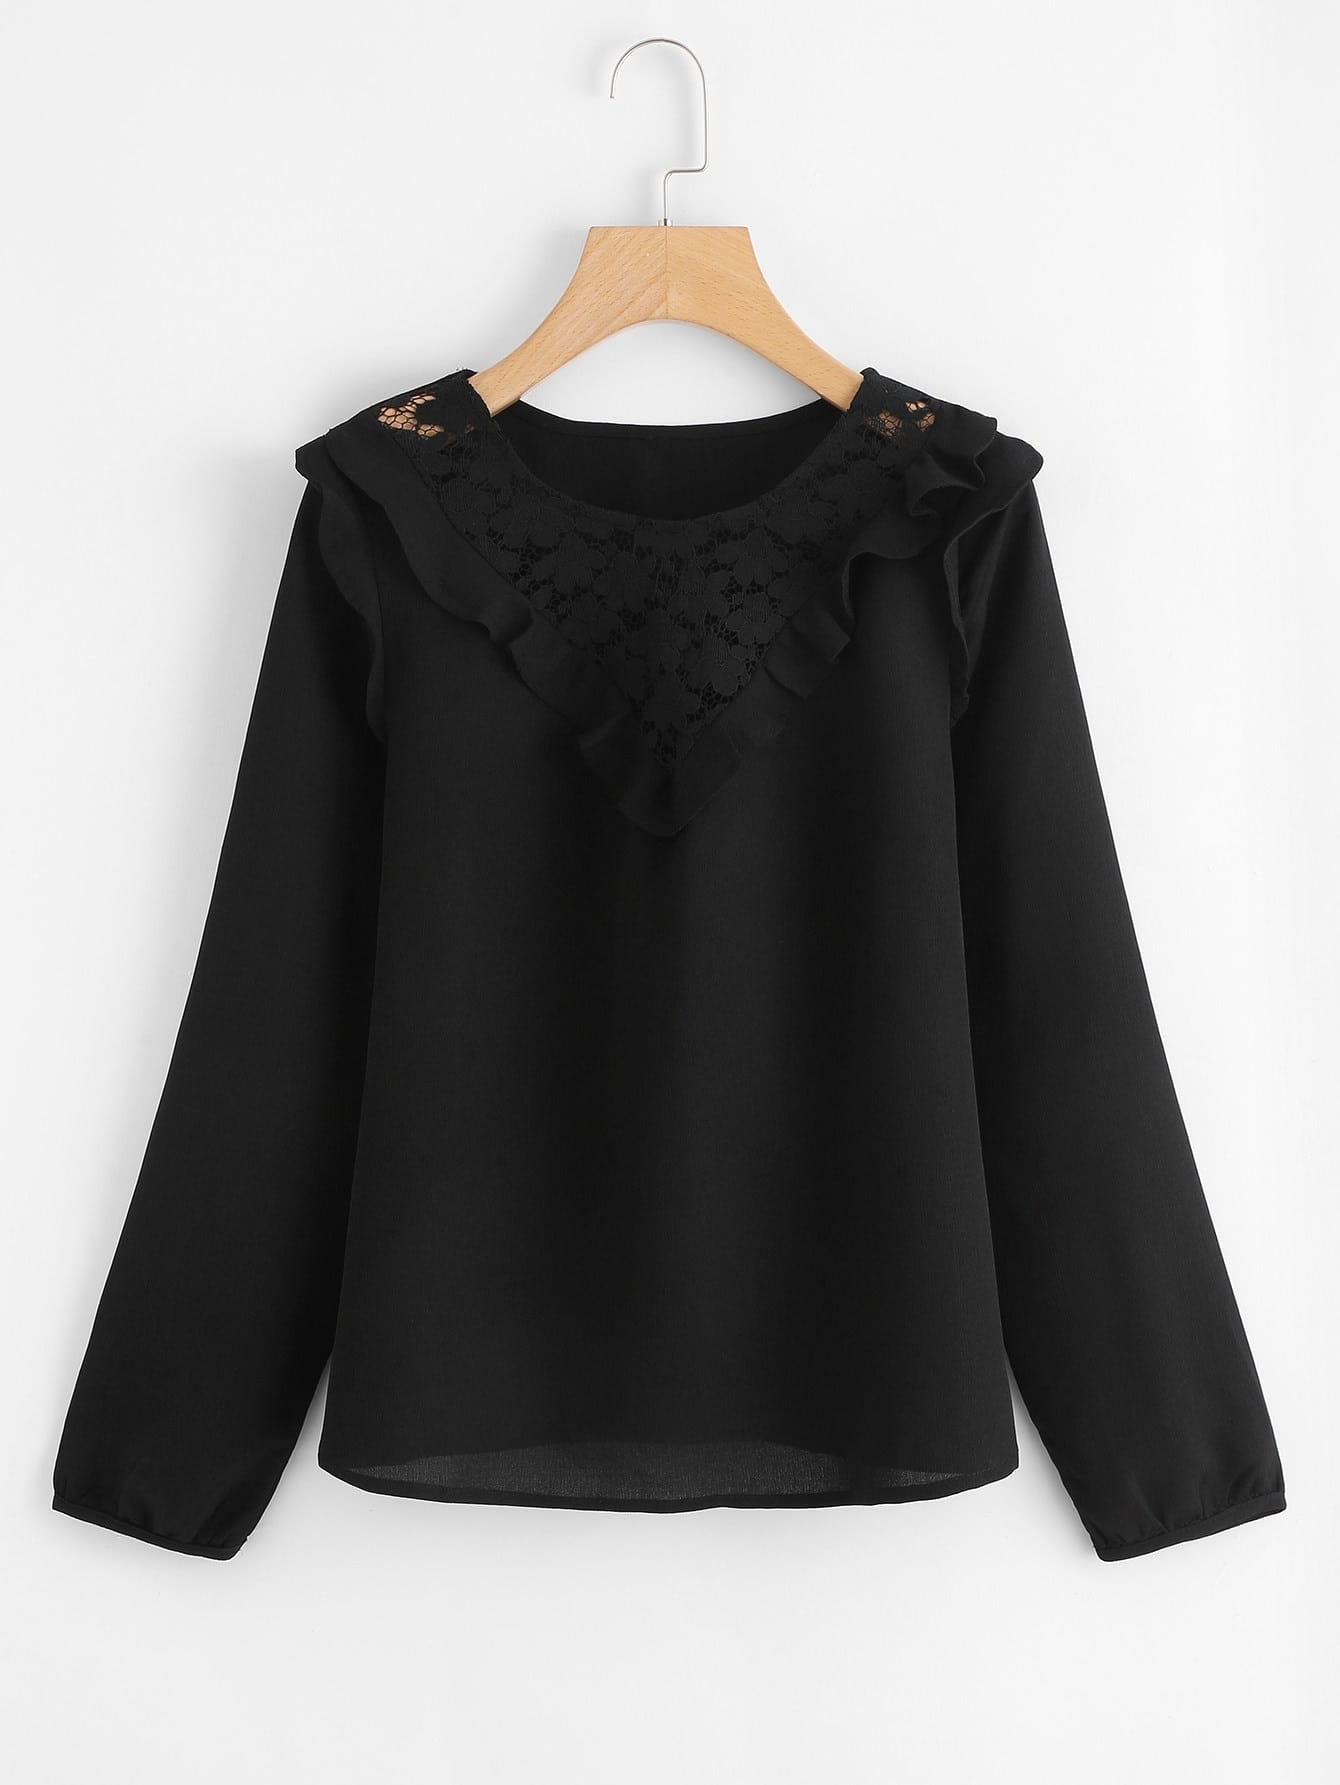 Frill Trim Lace Yoke Top lace panel yoke top